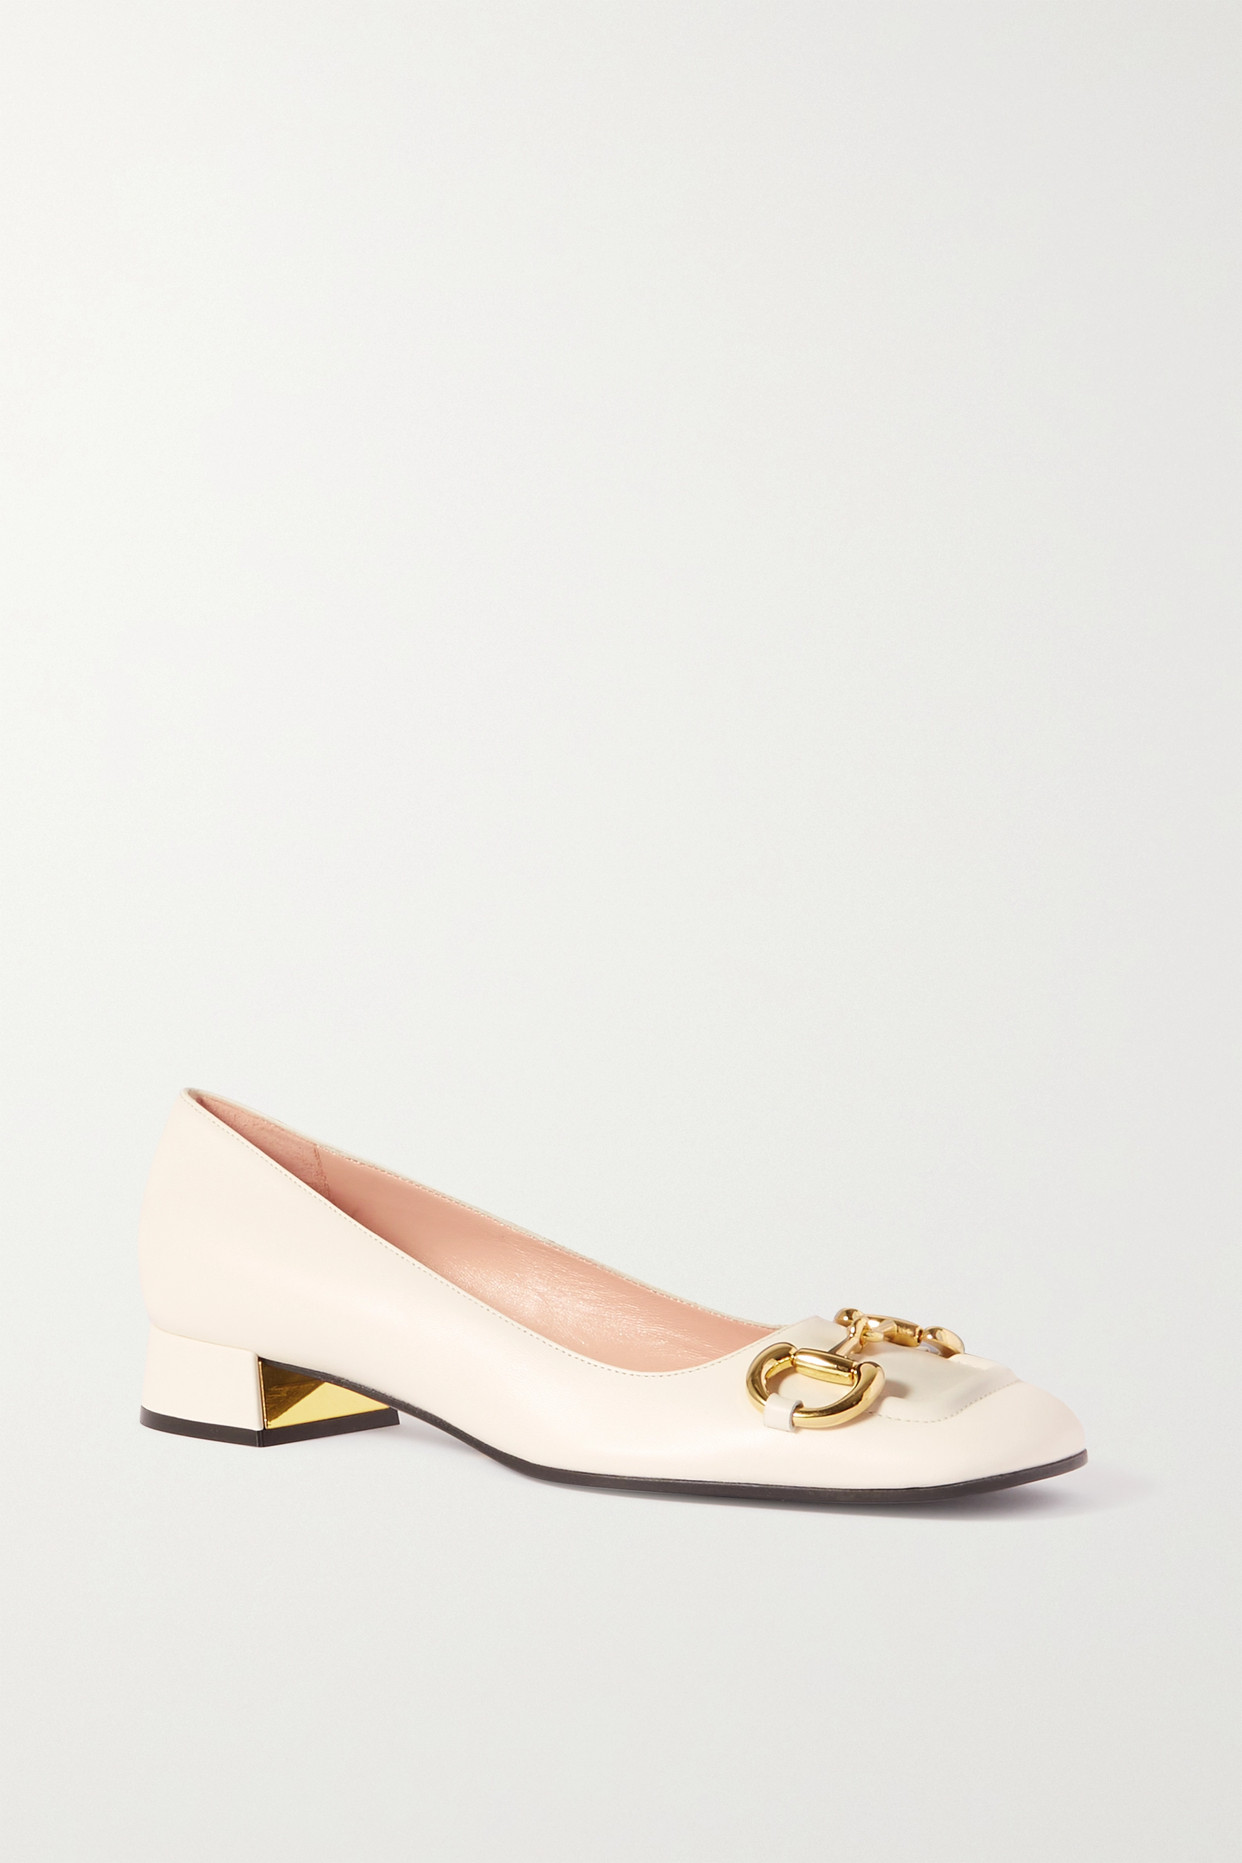 GUCCI - Baby Horsebit-detailed Leather Pumps - White - IT38.5